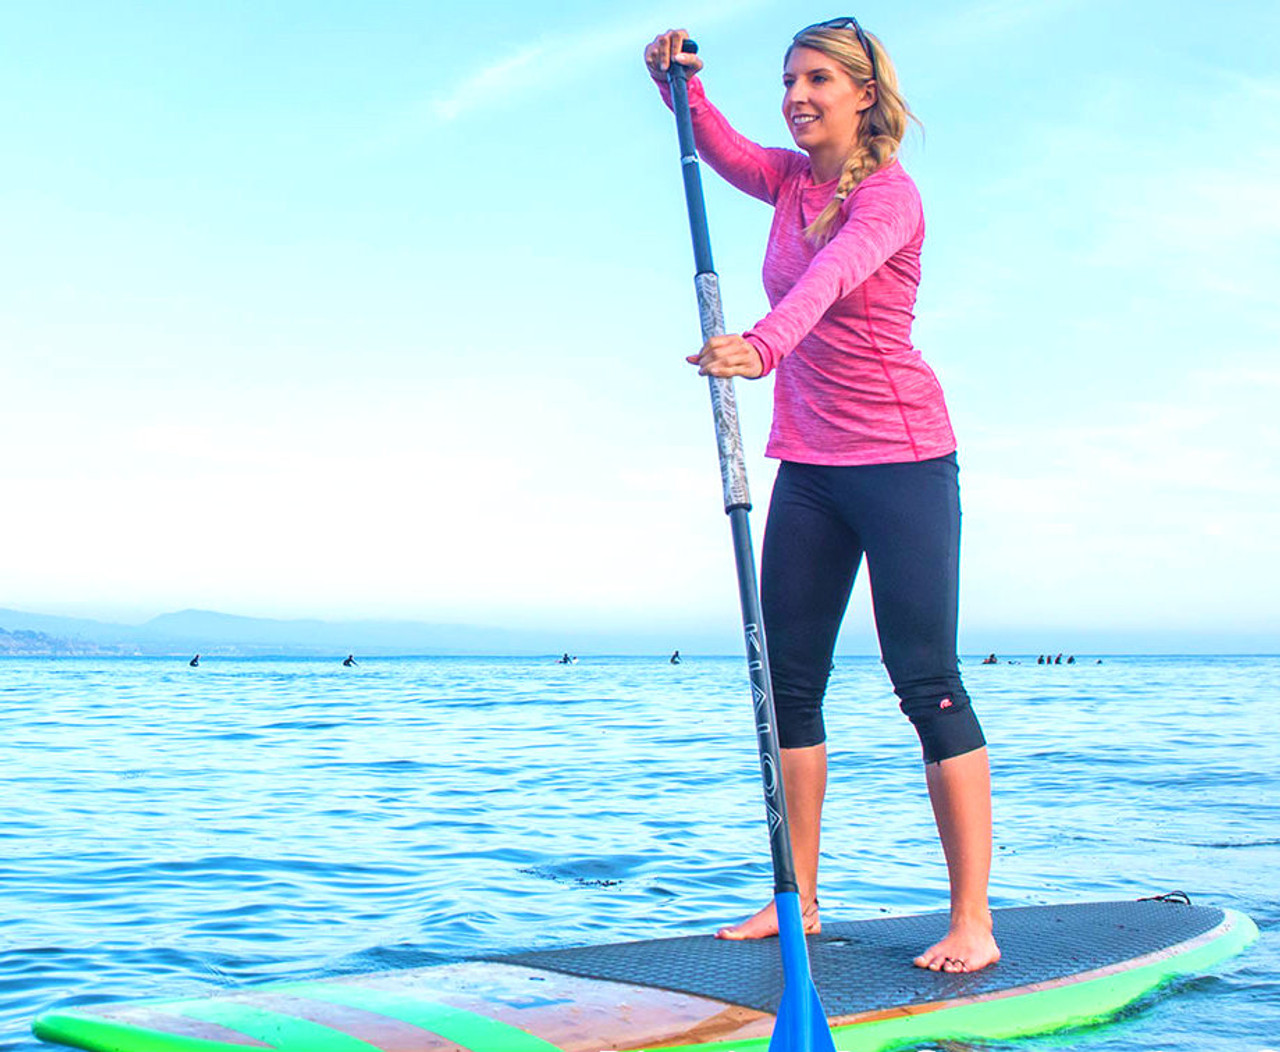 SUP Paddle Grips | Paddleboard Hand Comfort Grip